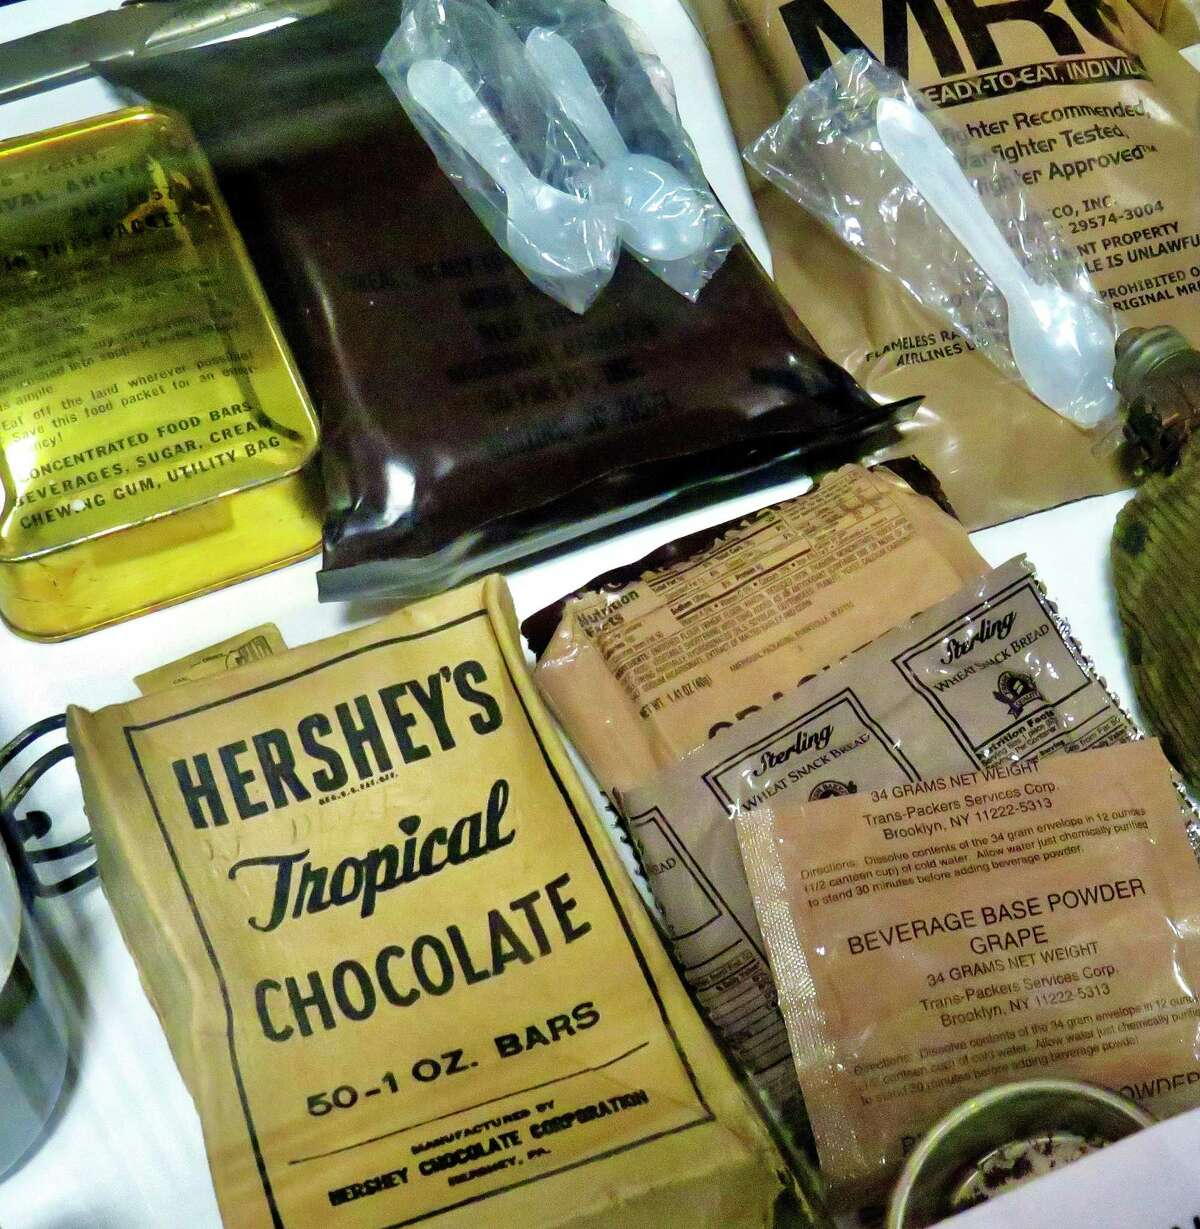 Food rations from various wars displayed at the West Haven Veterans Museum.